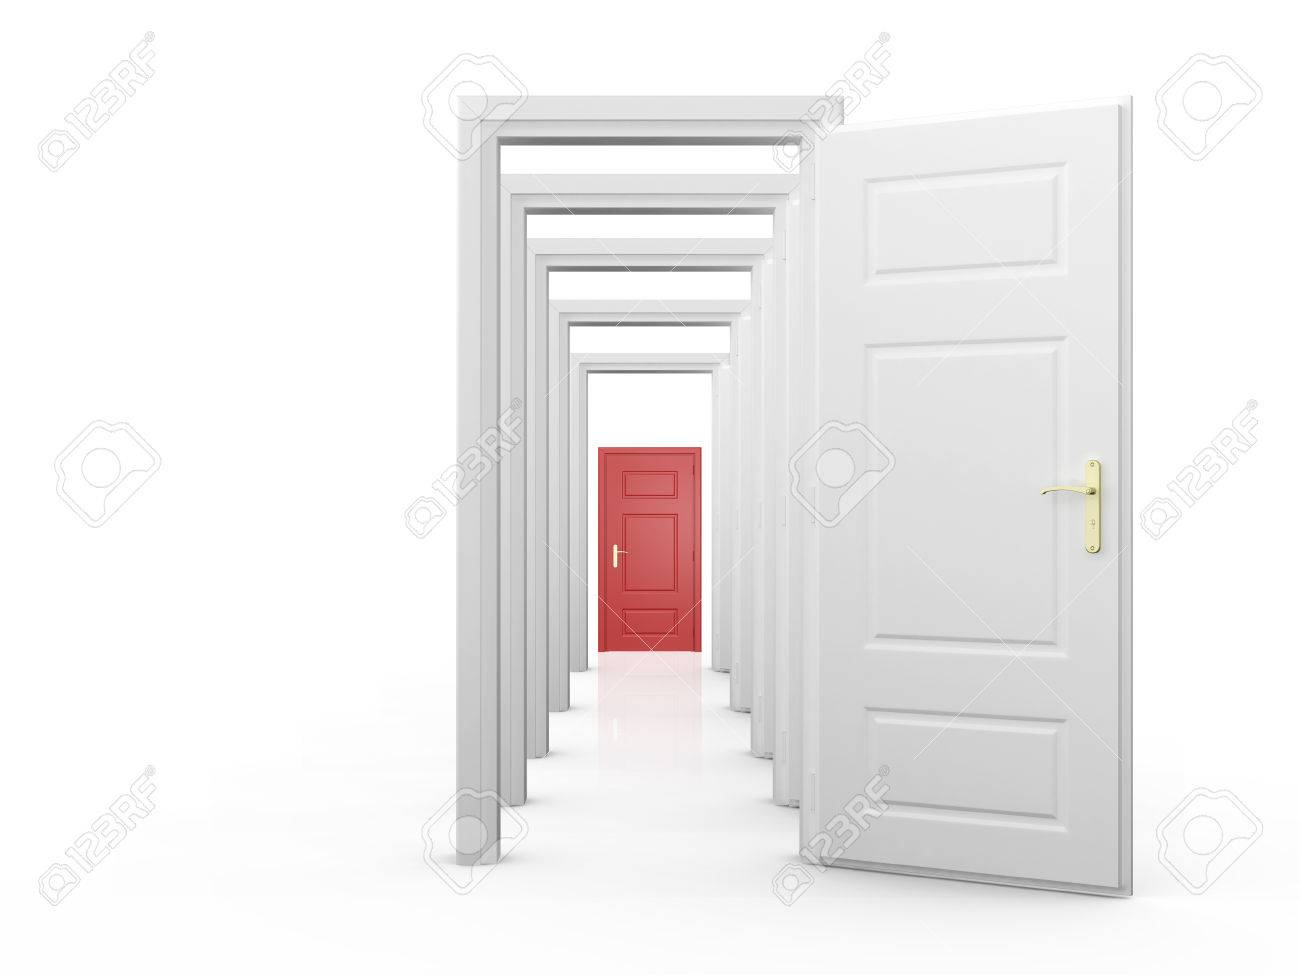 Open door closed door - Red Closed Door Behind Open Doors Isolated On White Background Stock Photo 22594545